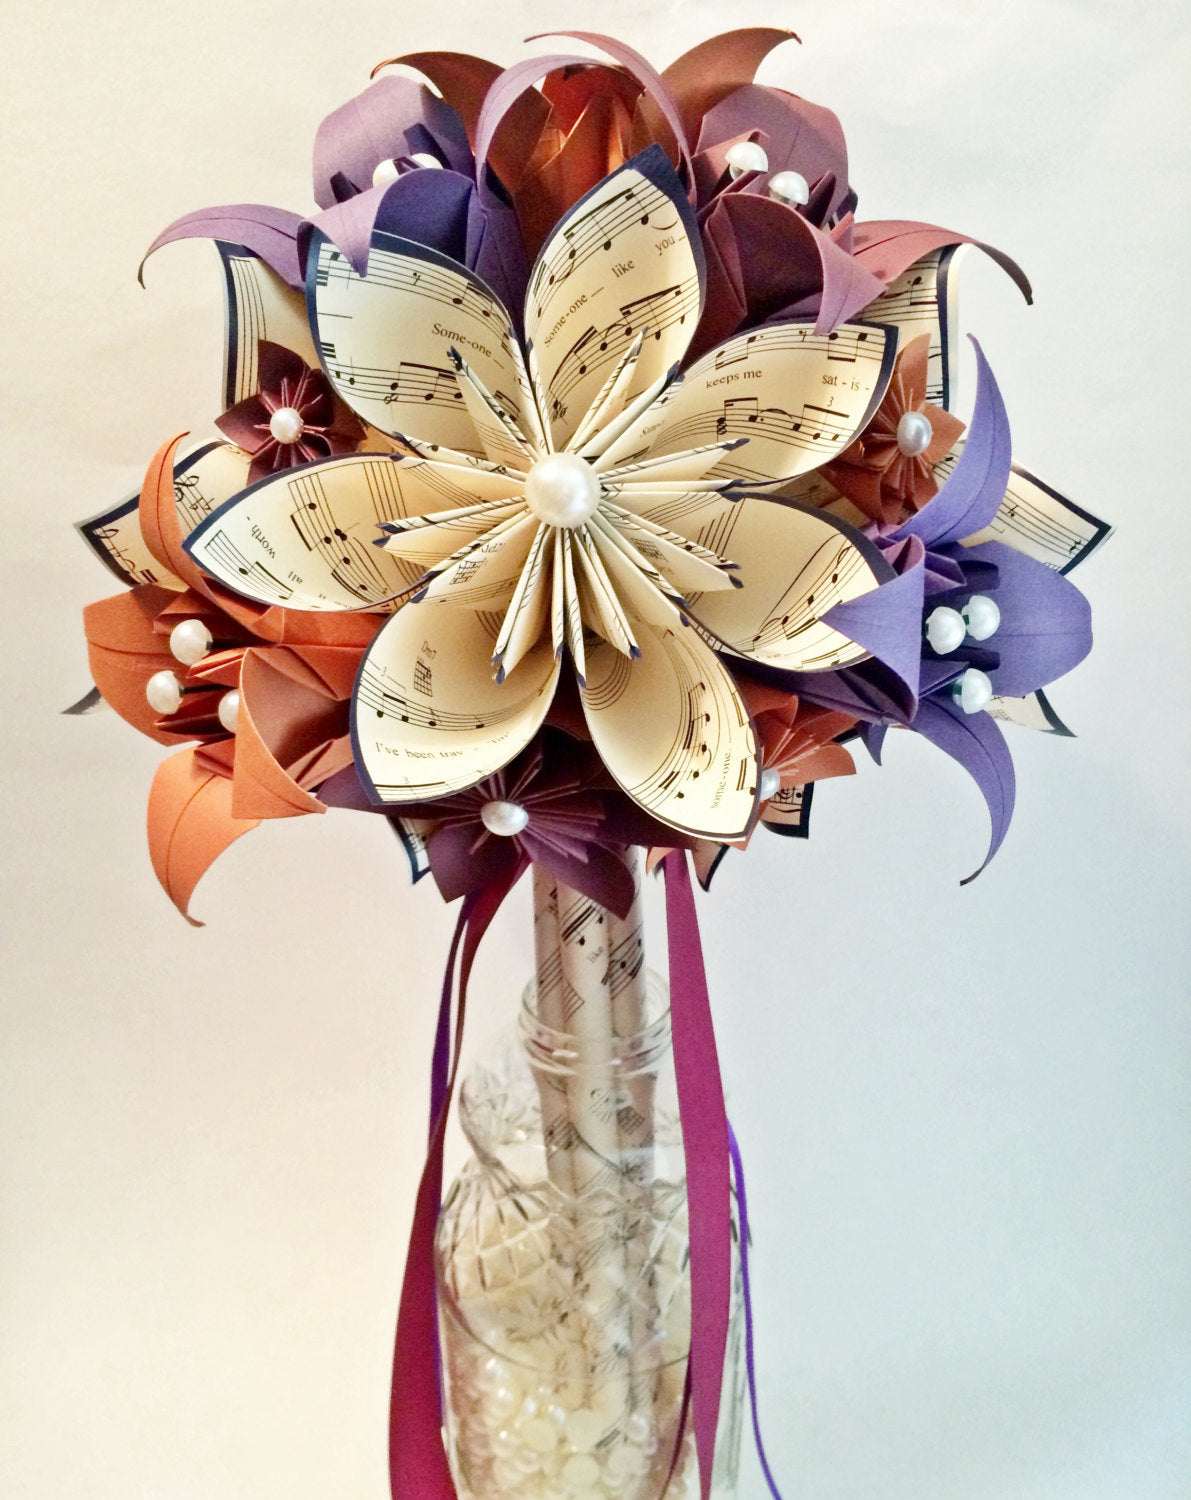 Brides Bouquet of Paper Daisies & Lilies- one of a kind origami, made to order, fall wedding, destination wedding, sheet music paper flowers